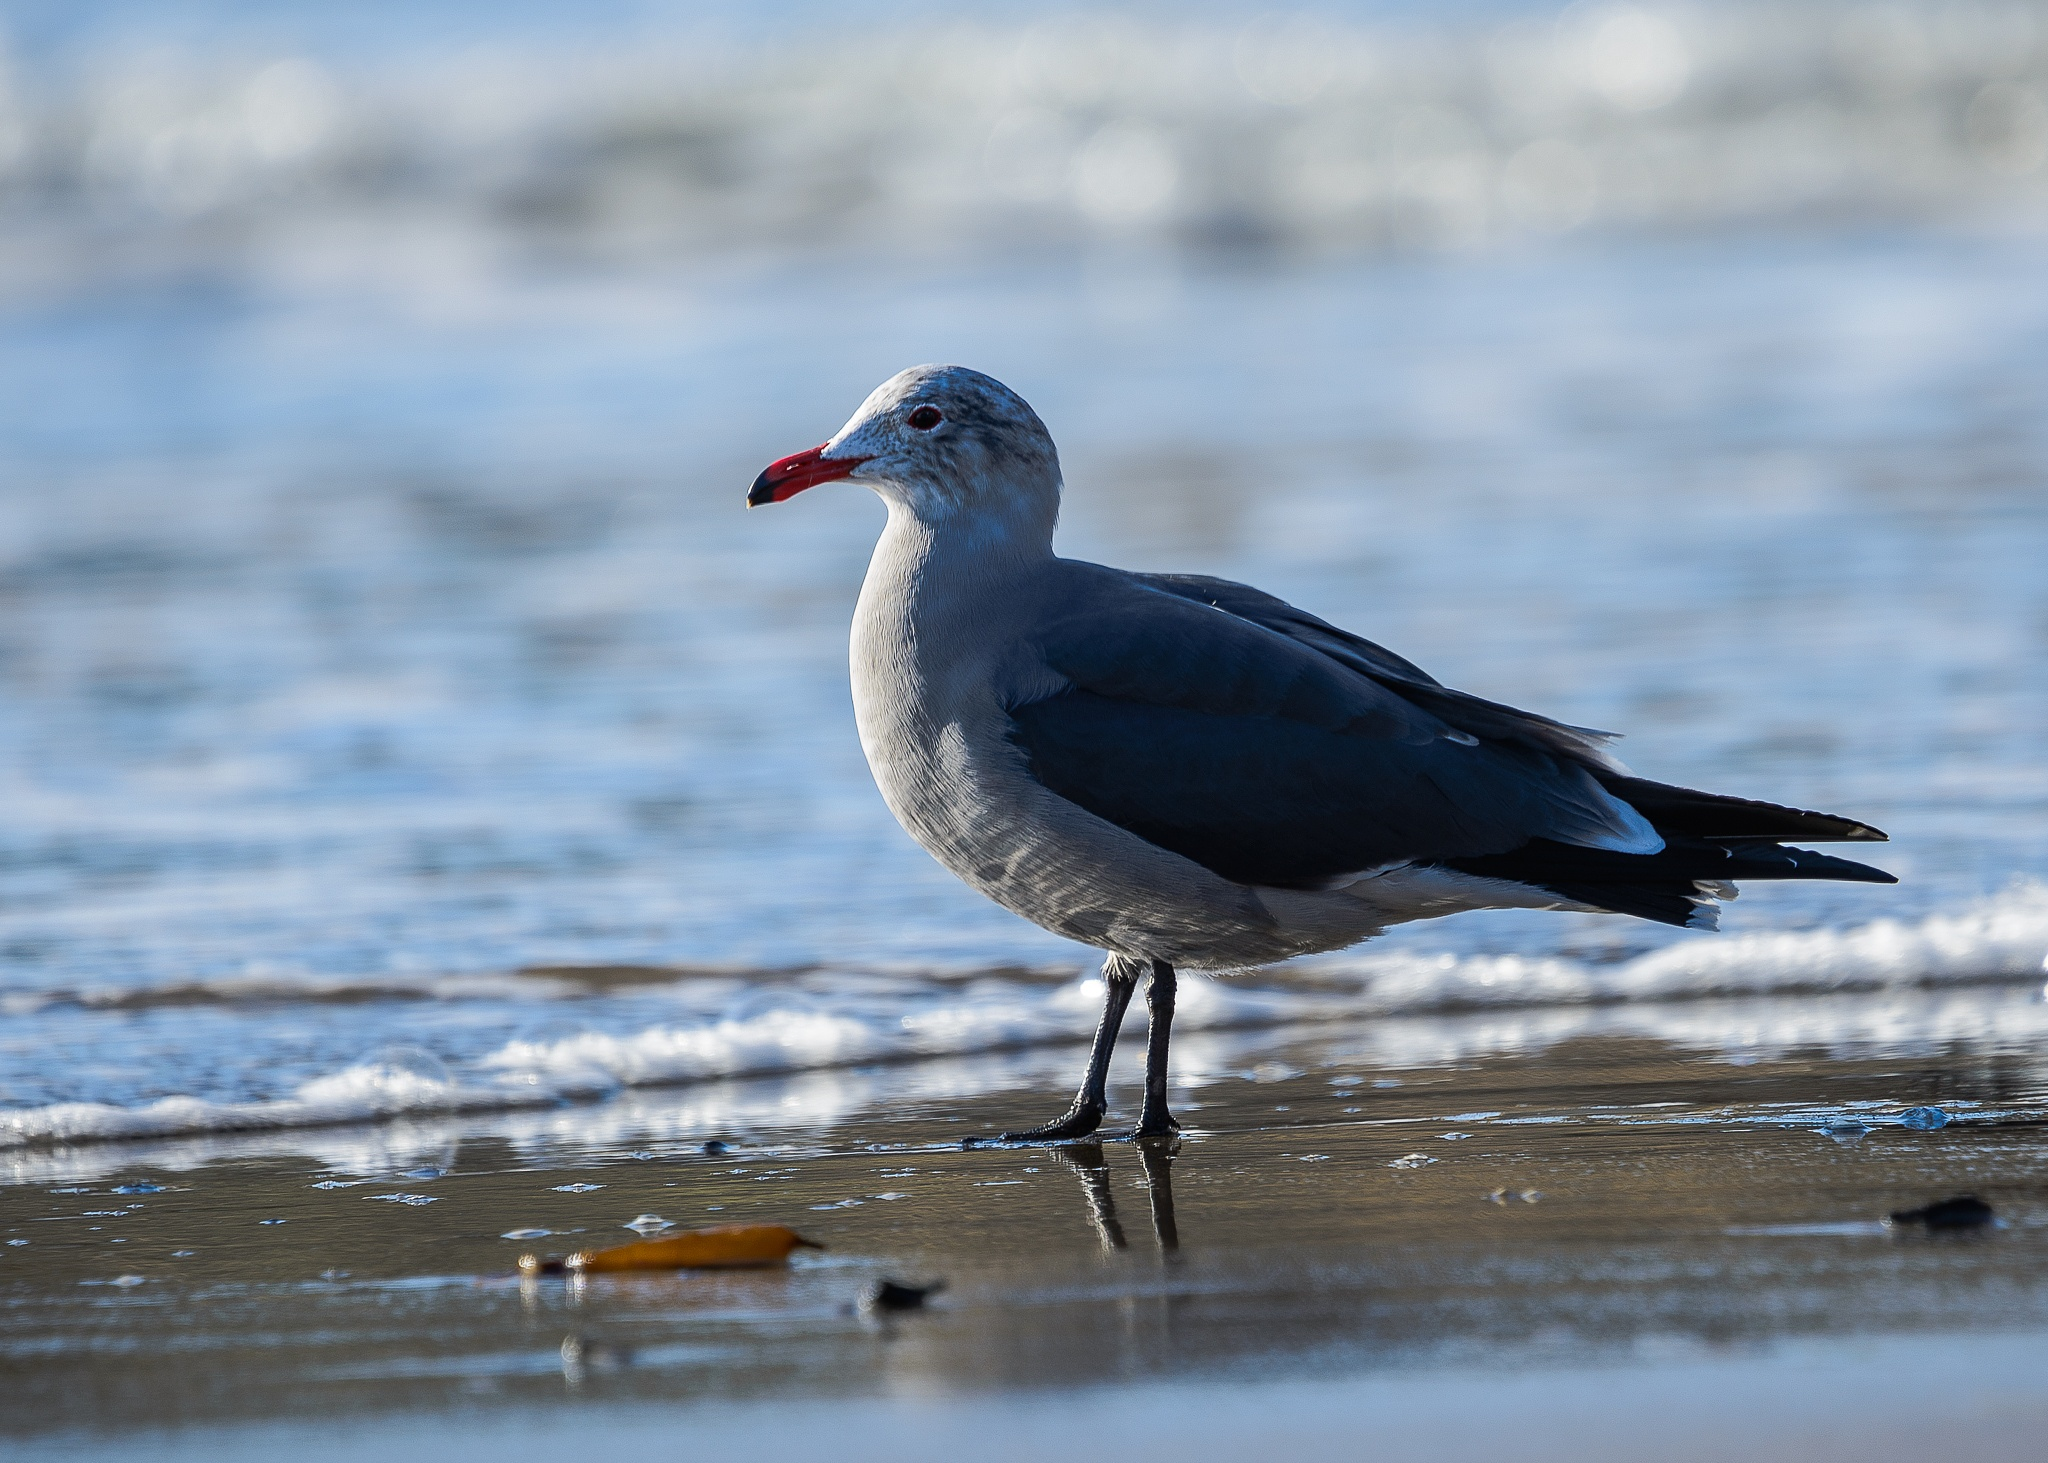 Seagull by the water by MatsGunnarssonPhotography